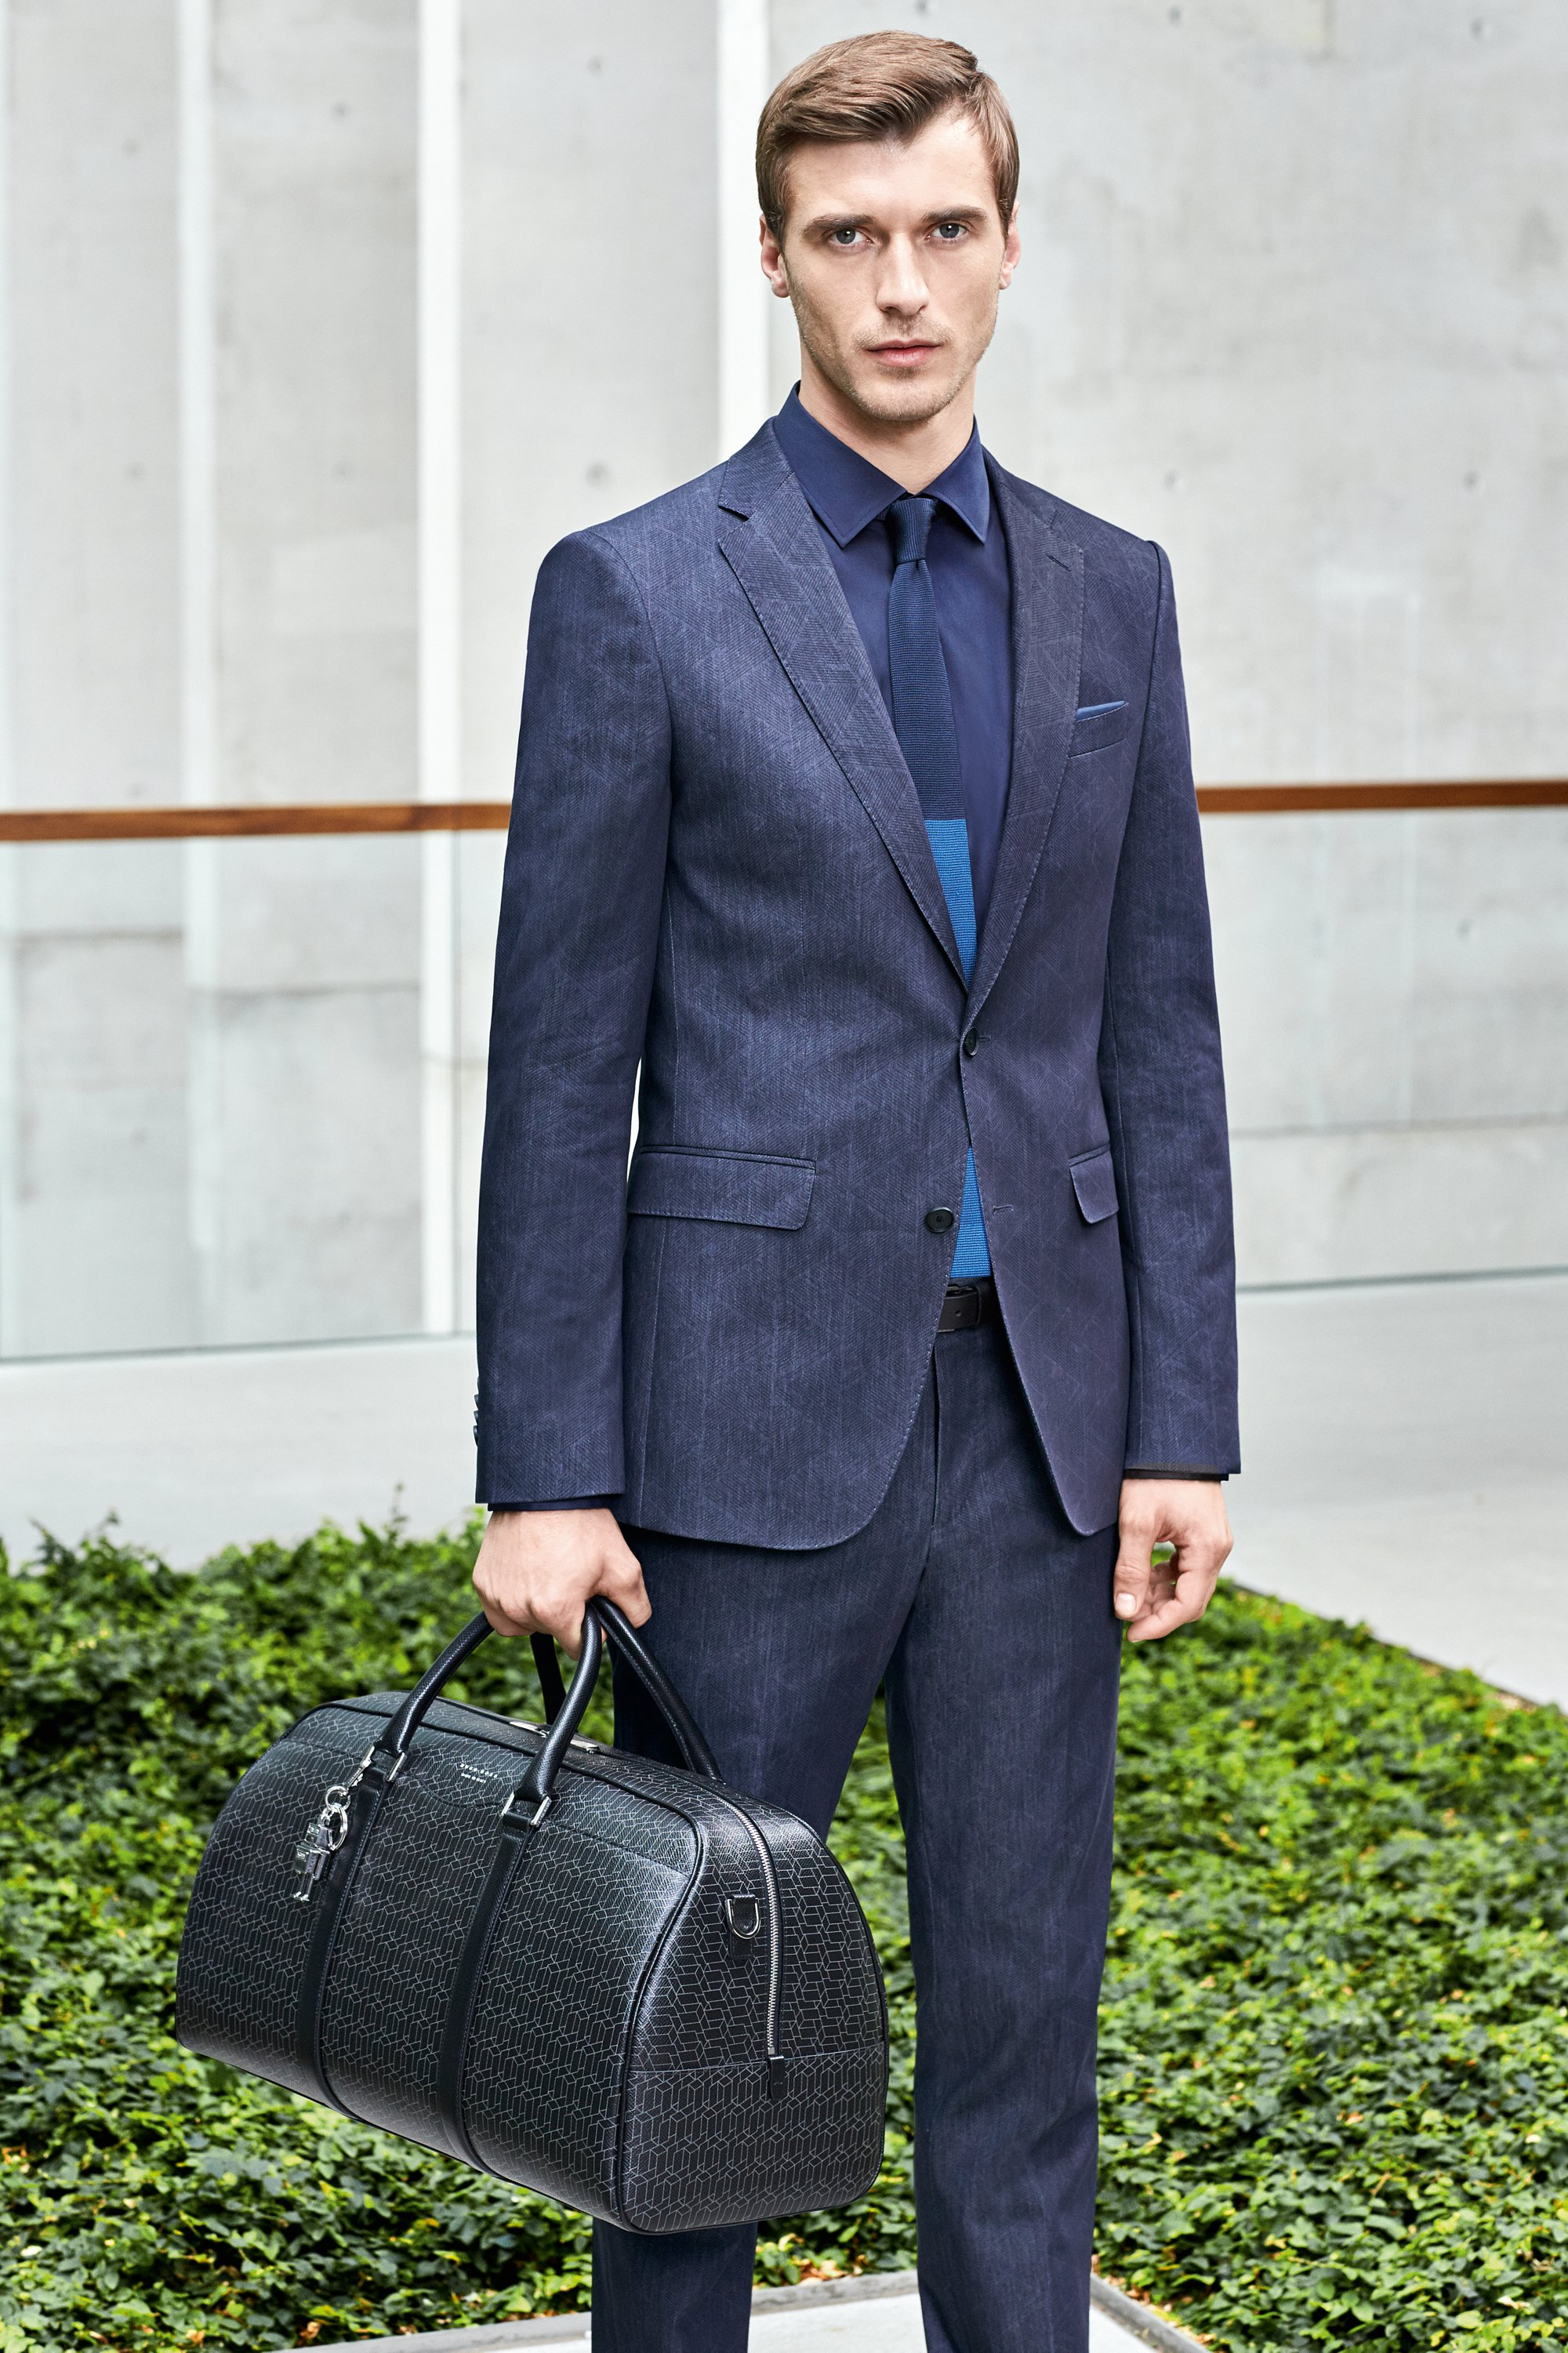 Suit by BOSS